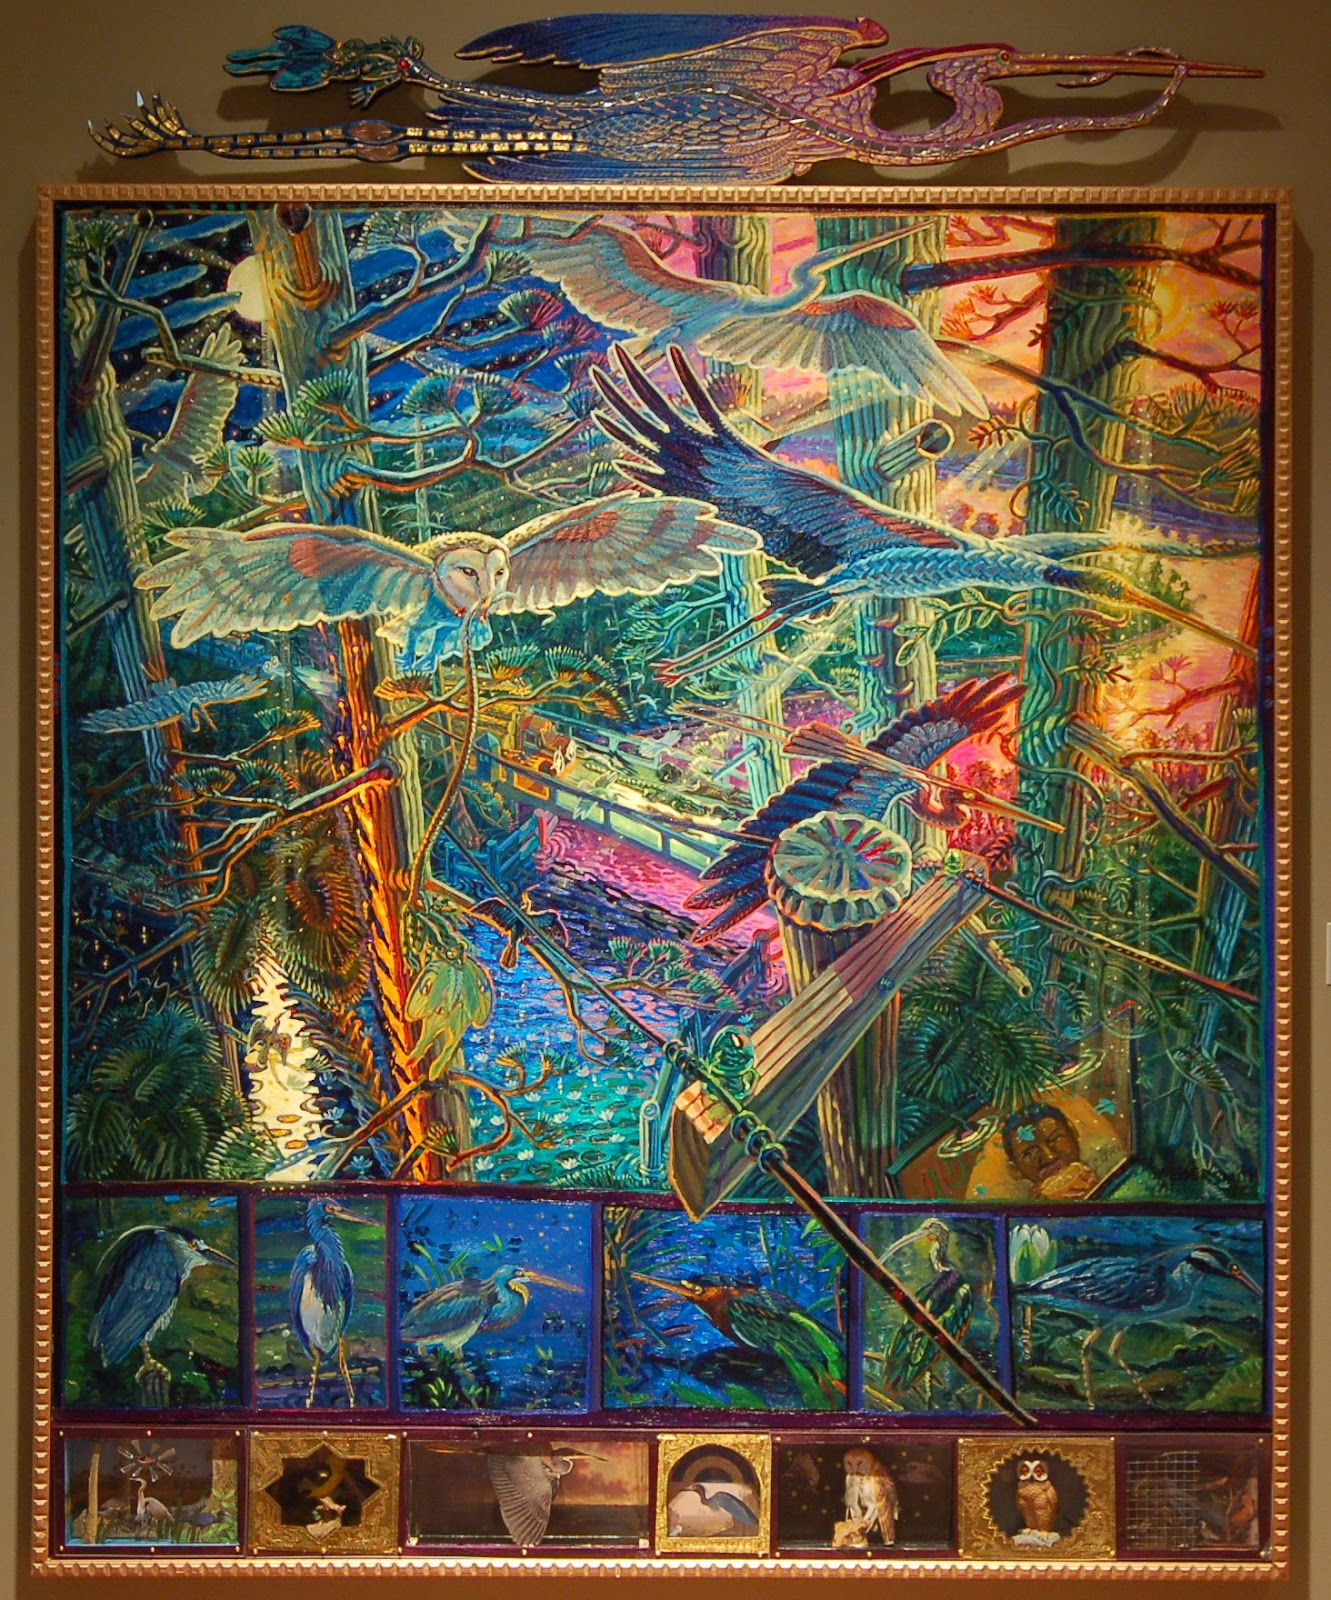 An analysis of the paintings of mark messersmith